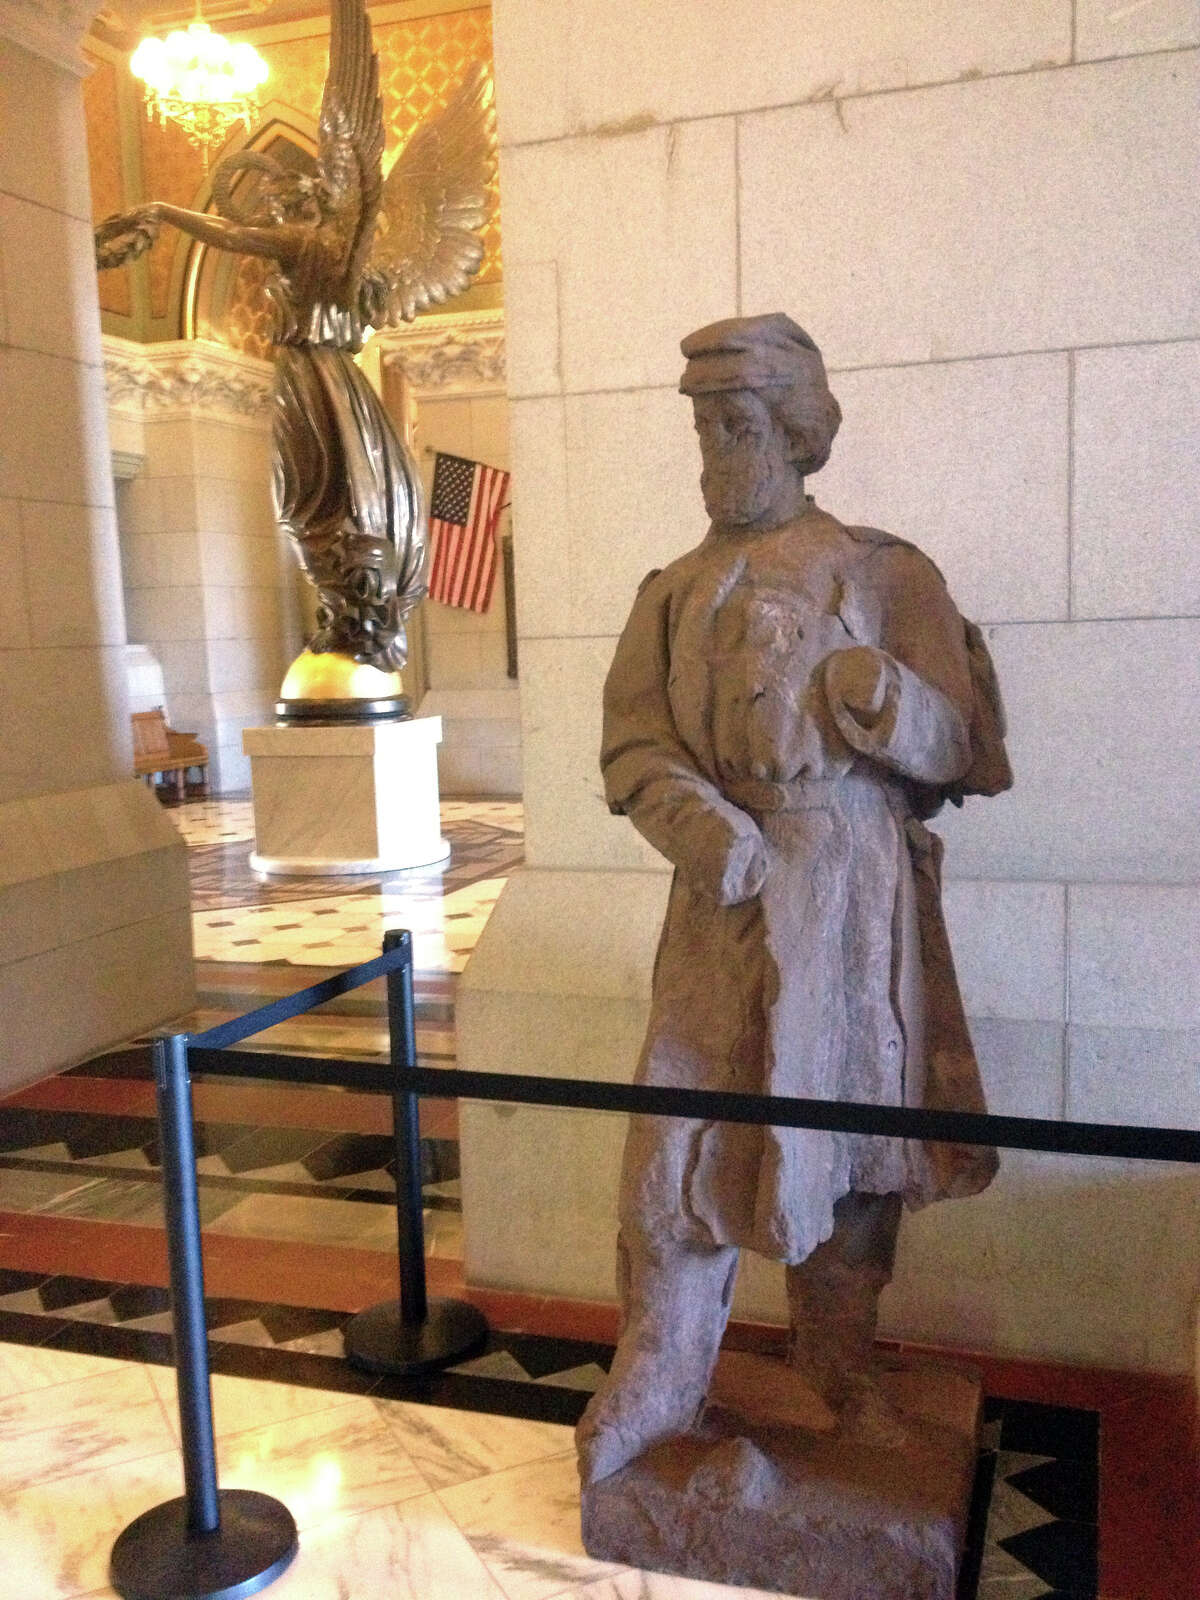 A crumbling civil war statue is being installed at the Capitol in Hartford.